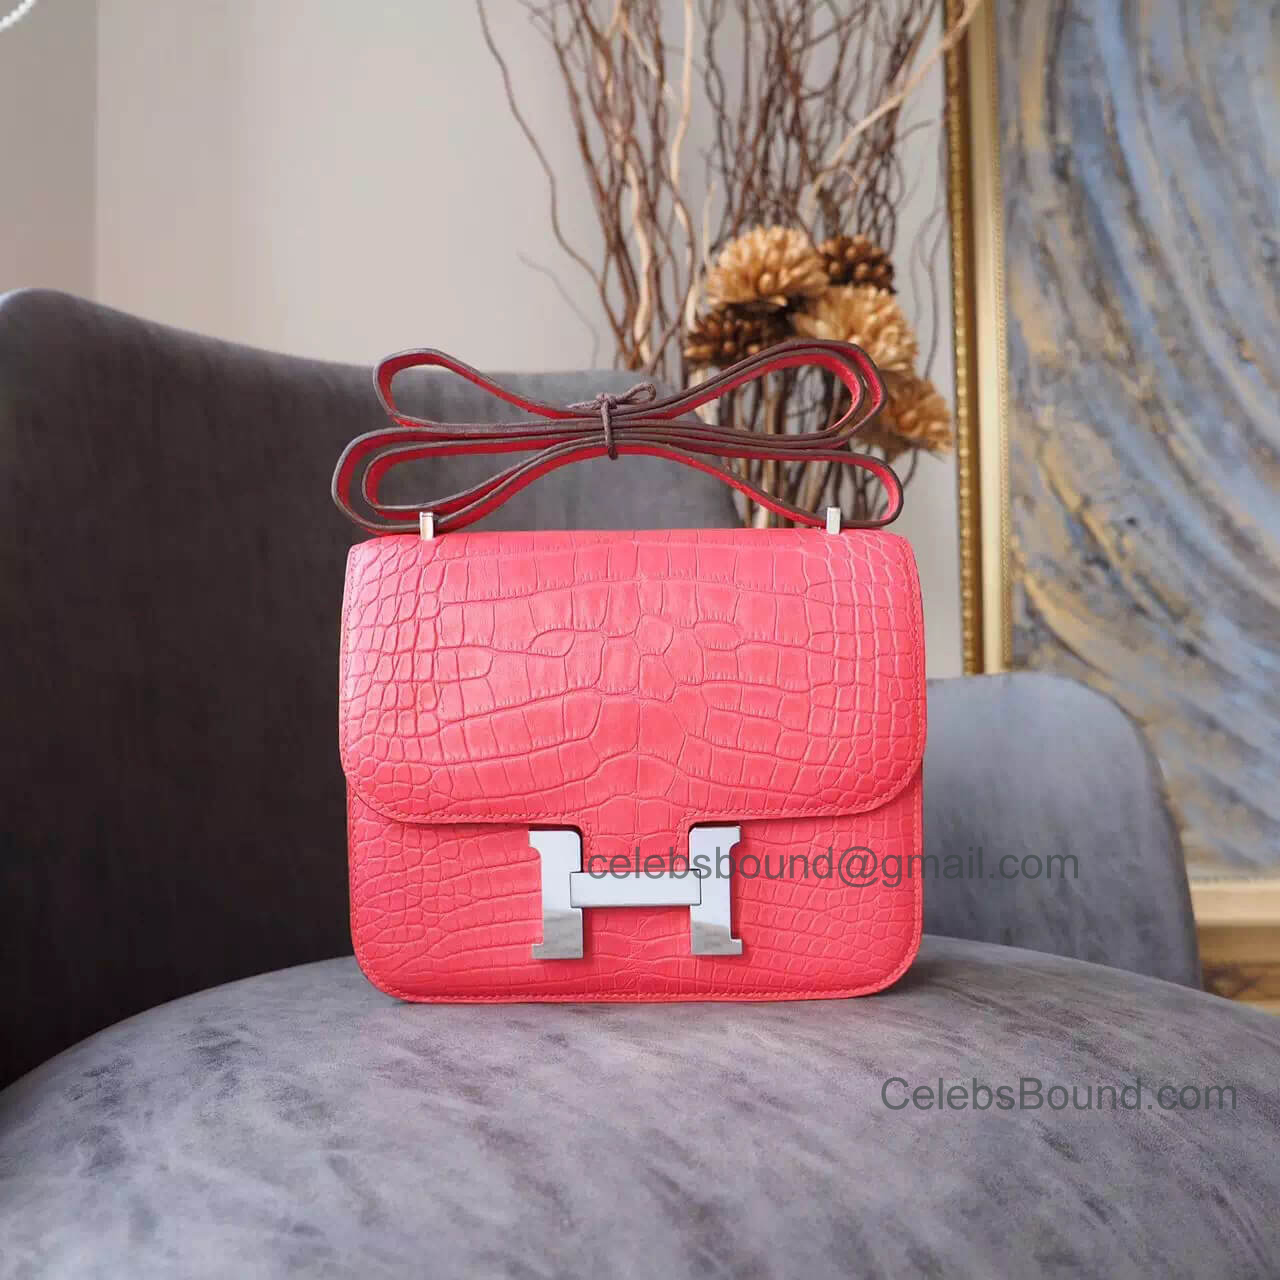 Replica Hermes Mini Constance 18 Bag in a5 Bougainvillea Matte Nile Croc PHW